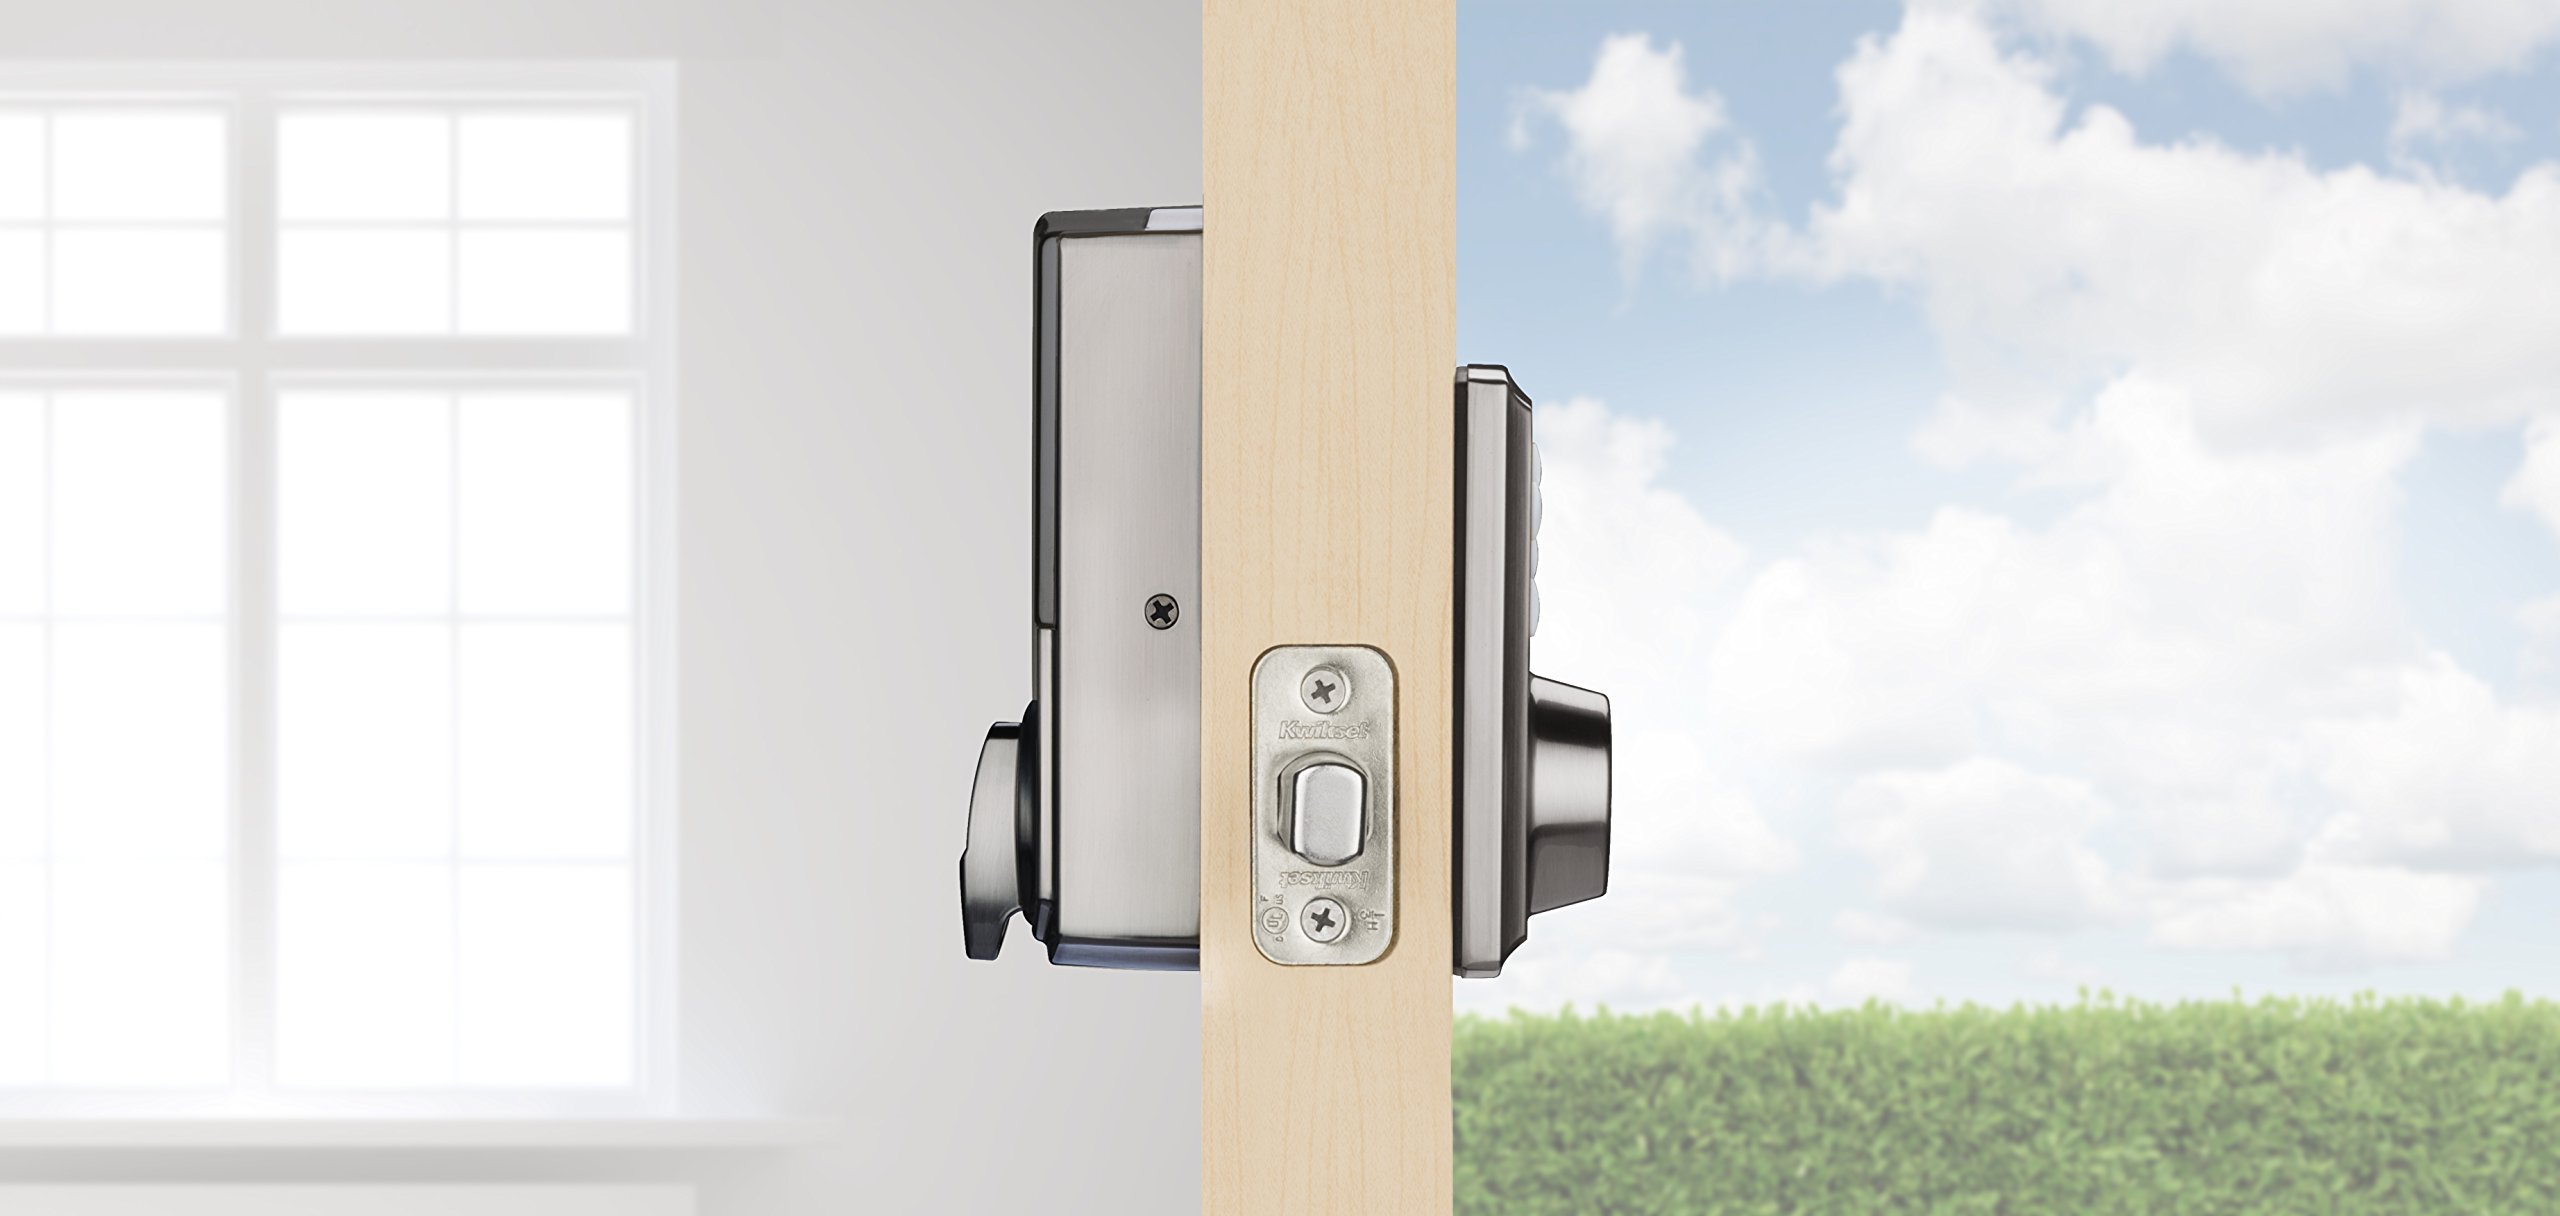 Kwikset 888ZW500-15S Smartcode 888 Electronic Deadbolt with Z-Wave Technology by Kwikset (Image #4)